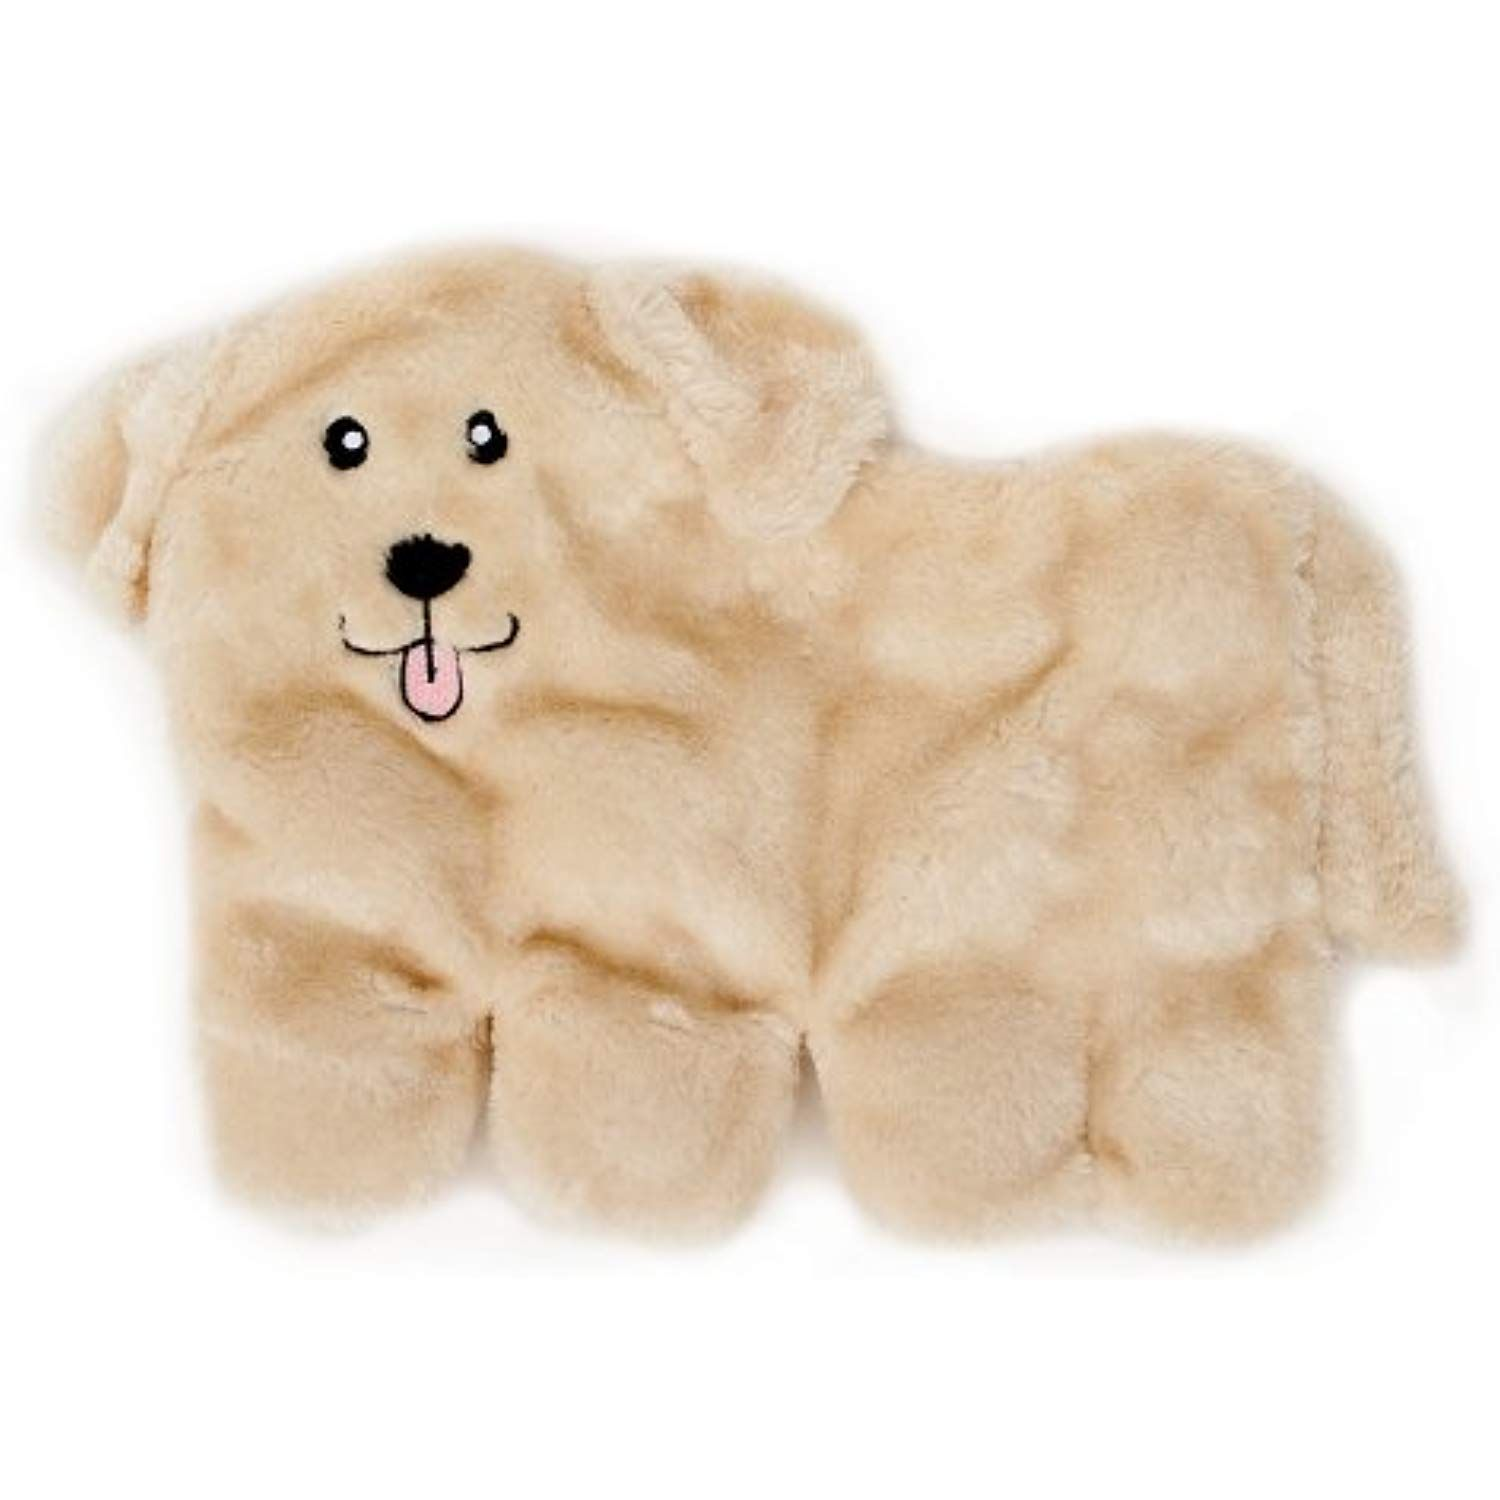 Zippypaws Squeakie Pup No Stuffing Plush Dog Toy 11 Squeakers